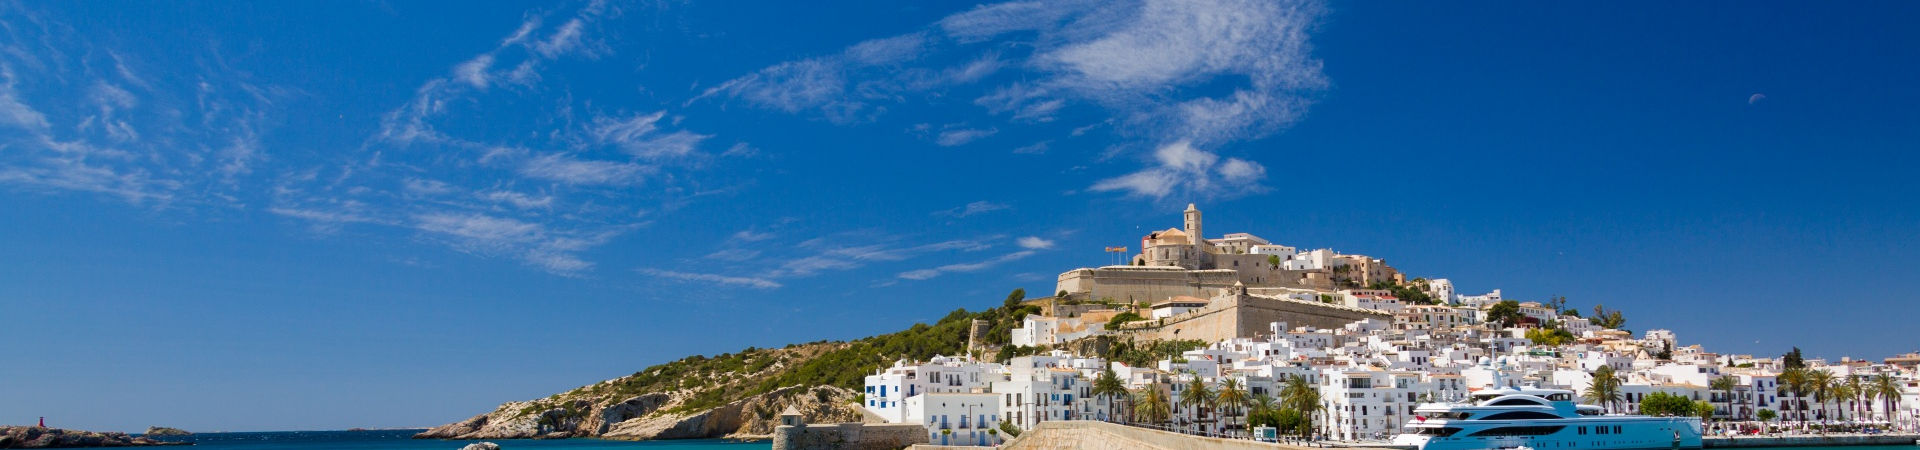 Resource image of the destination port Ibiza for the ferry route Gandia - Ibiza